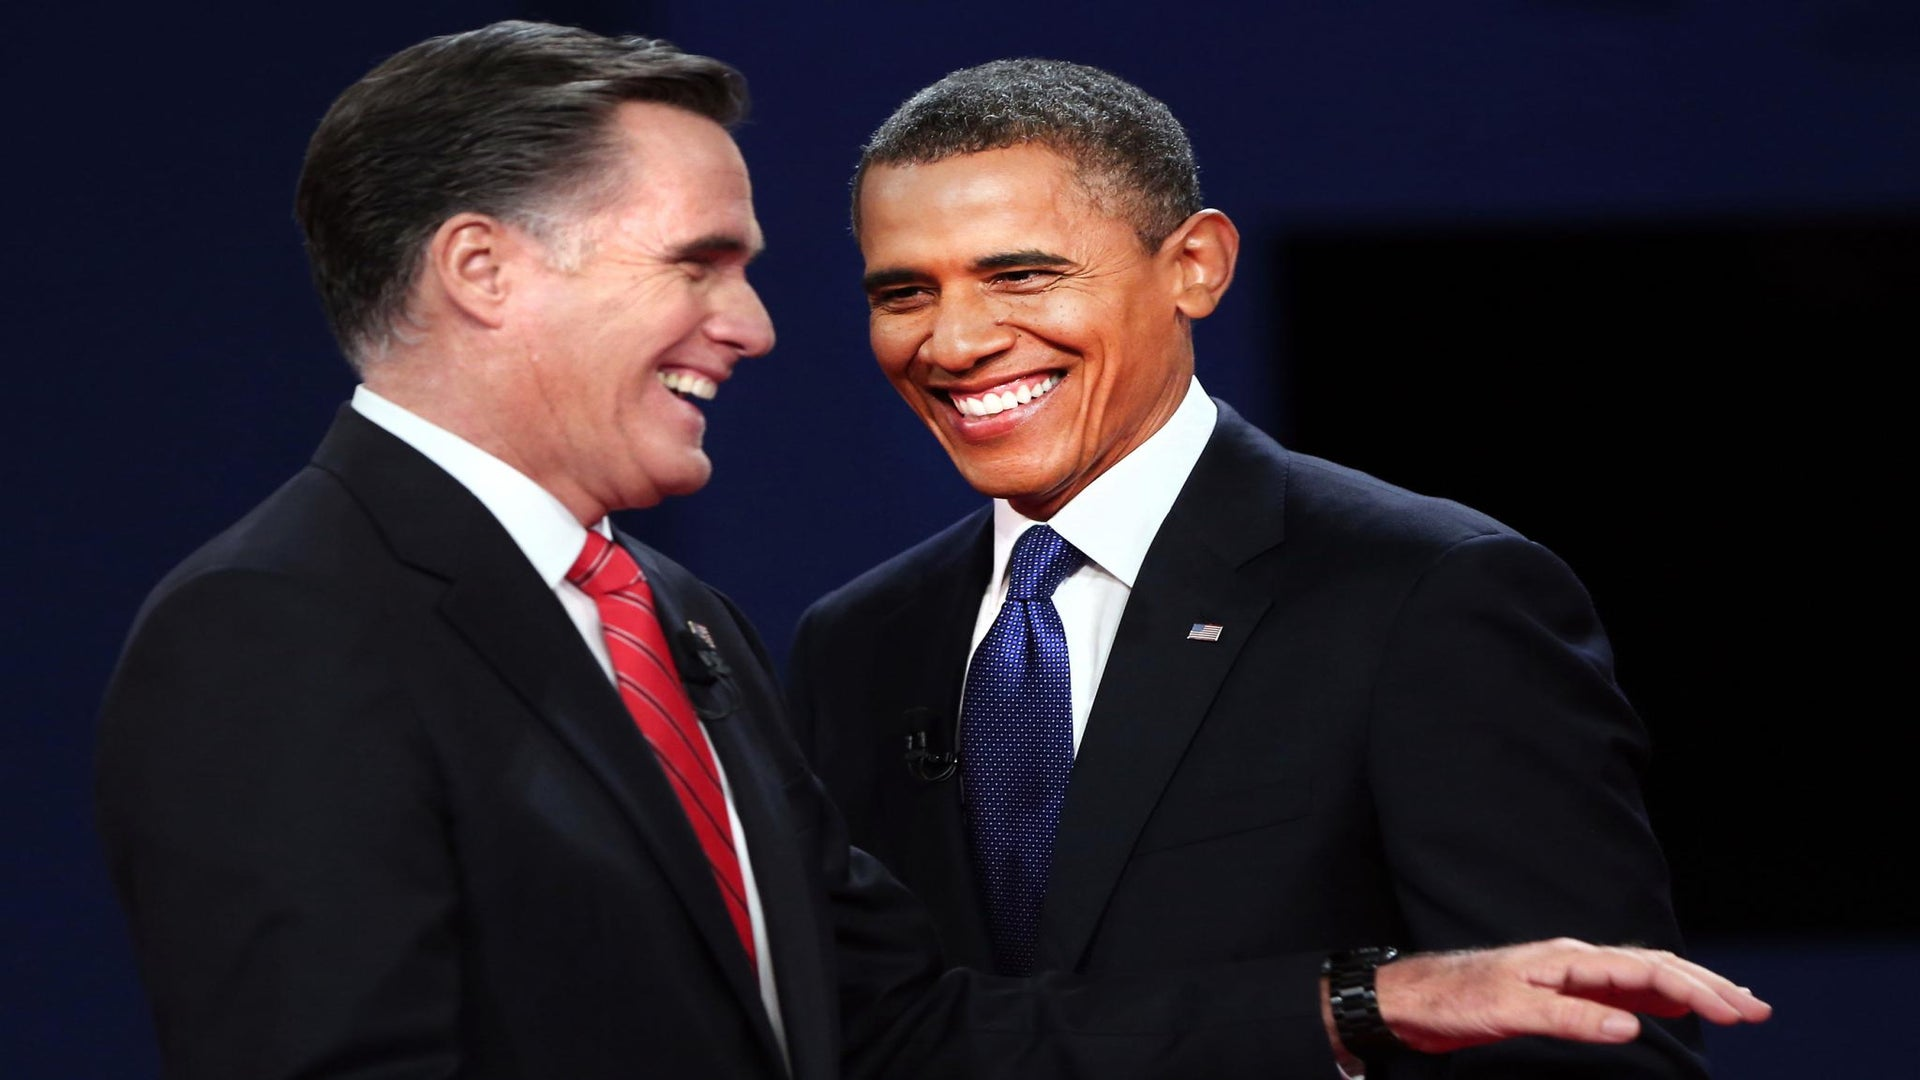 Obama Vs. Romney: Your Take On the Debate